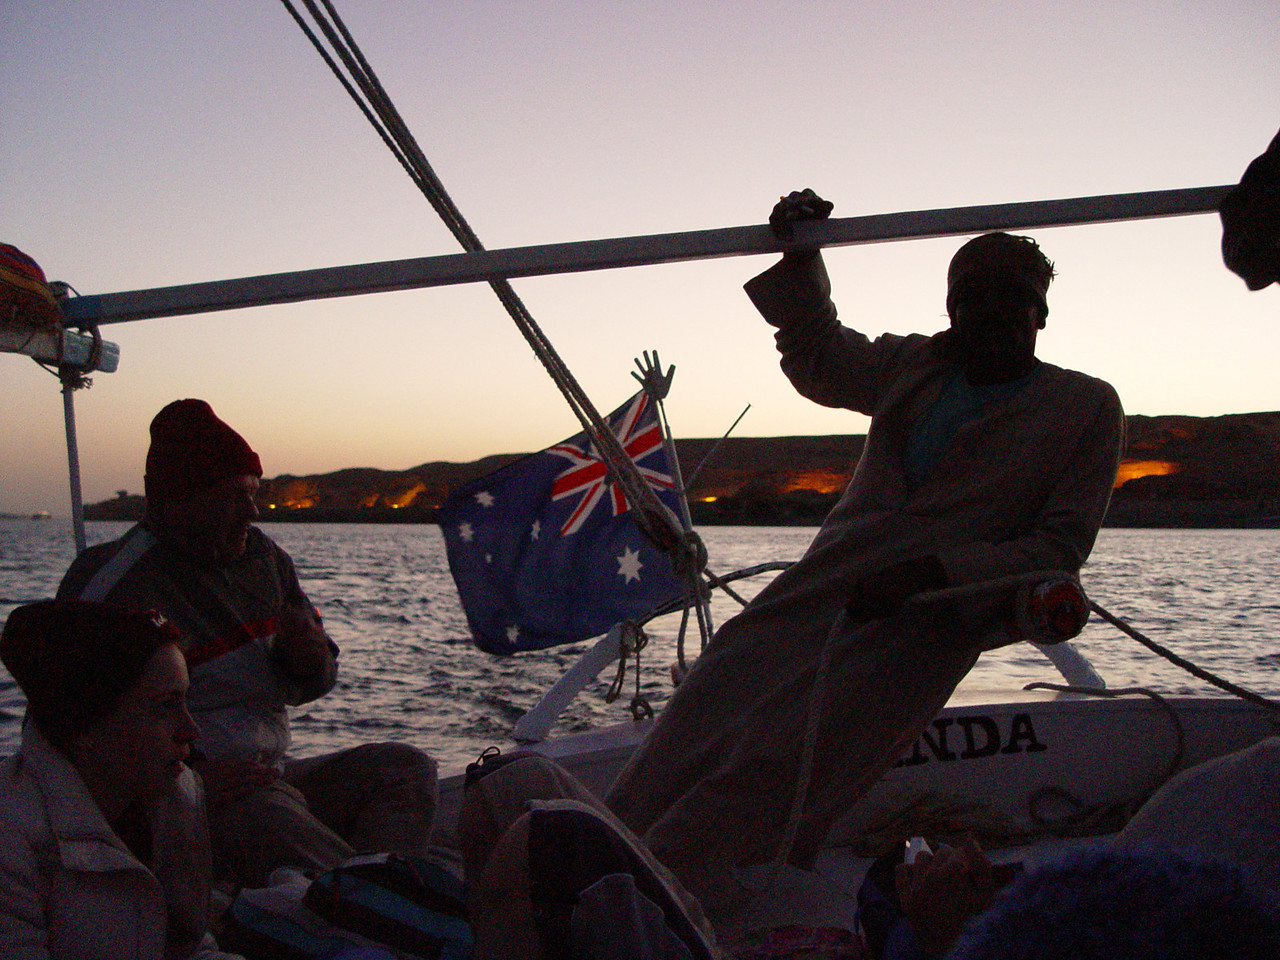 l) Dusk  falls on the felucca.  You can see openings carved into the rock which are lit up.  Lisa comments that it would be great if we could sleep in those openings tonight since it was so cold last night. Everyone says yeah!. However, Tony doesn't think it's such a great idea to sleep with all those mummies. Those are the tombs of Gebel el Silsila.